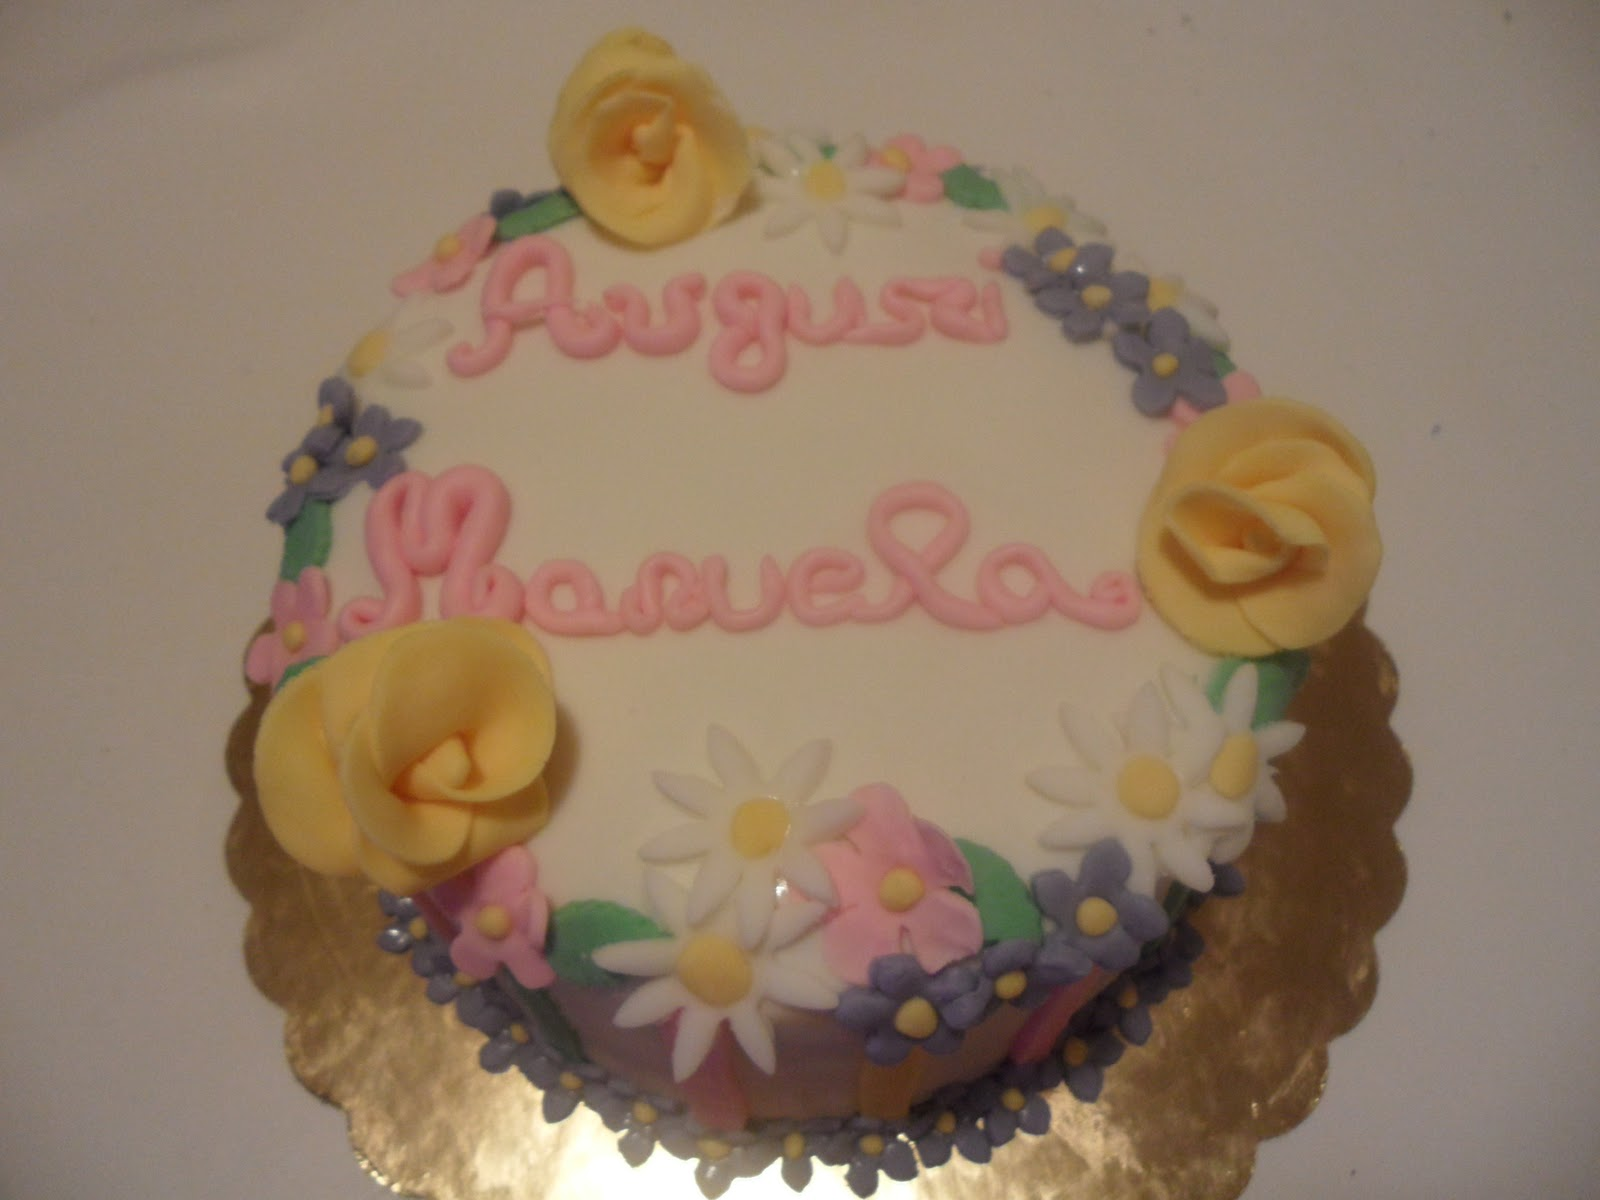 Birthday Cake Images With Name Manu : le dolcezze di Valentina: Torta Auguri